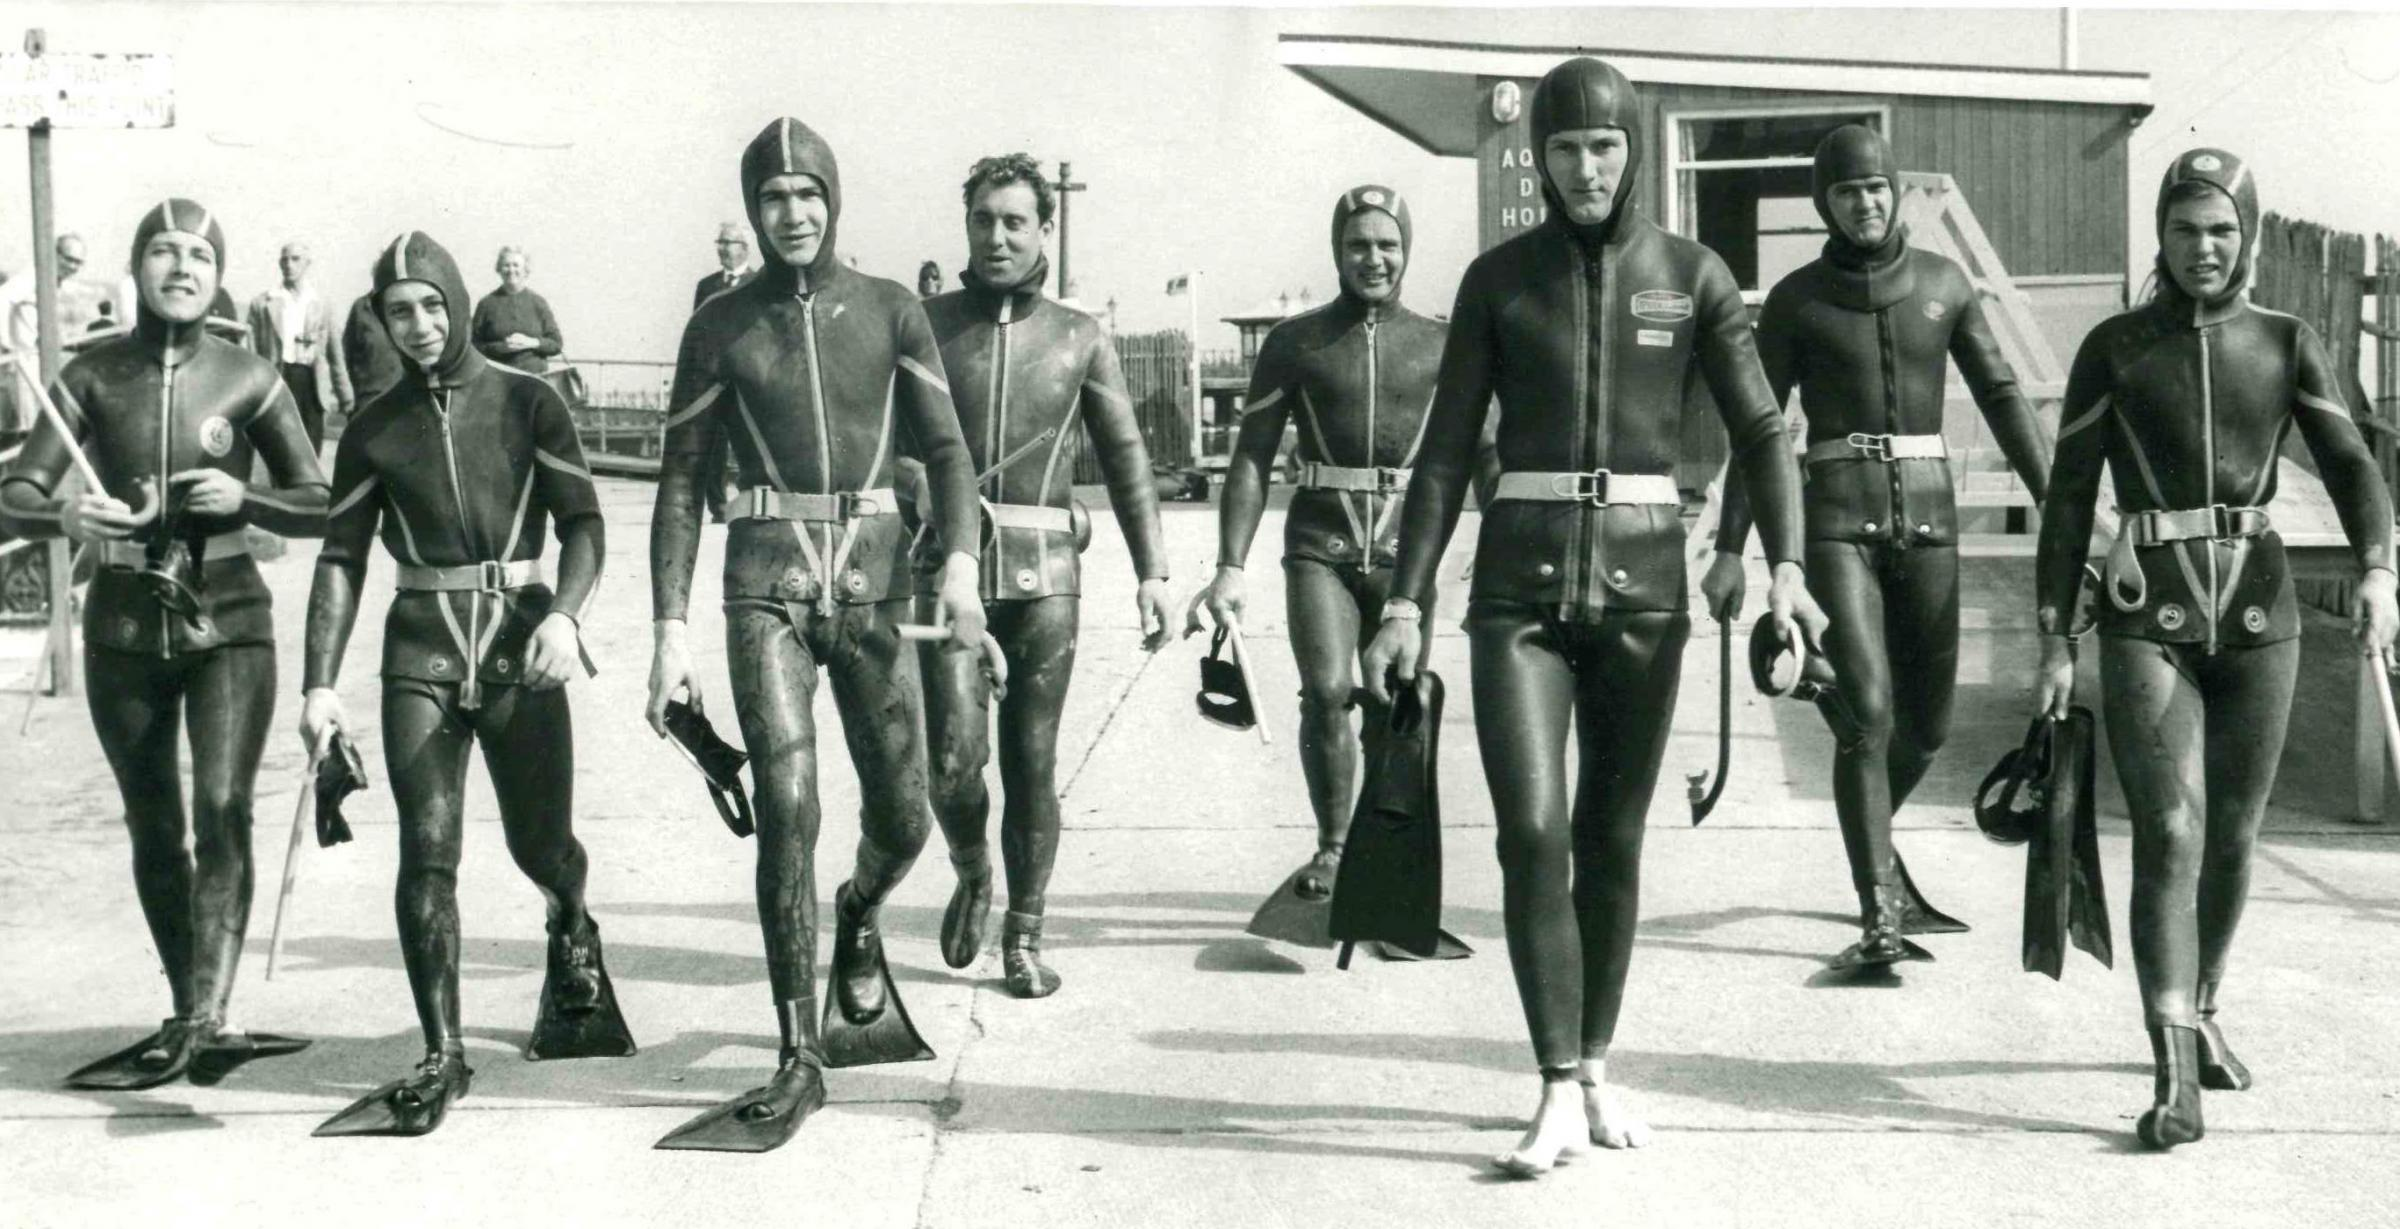 An instructor from the Aqualung Diving Holidays School leads his frogmen pupils to their underwater classroom at Swanage Bay in September 1966. The classes were run by former Navy divers.